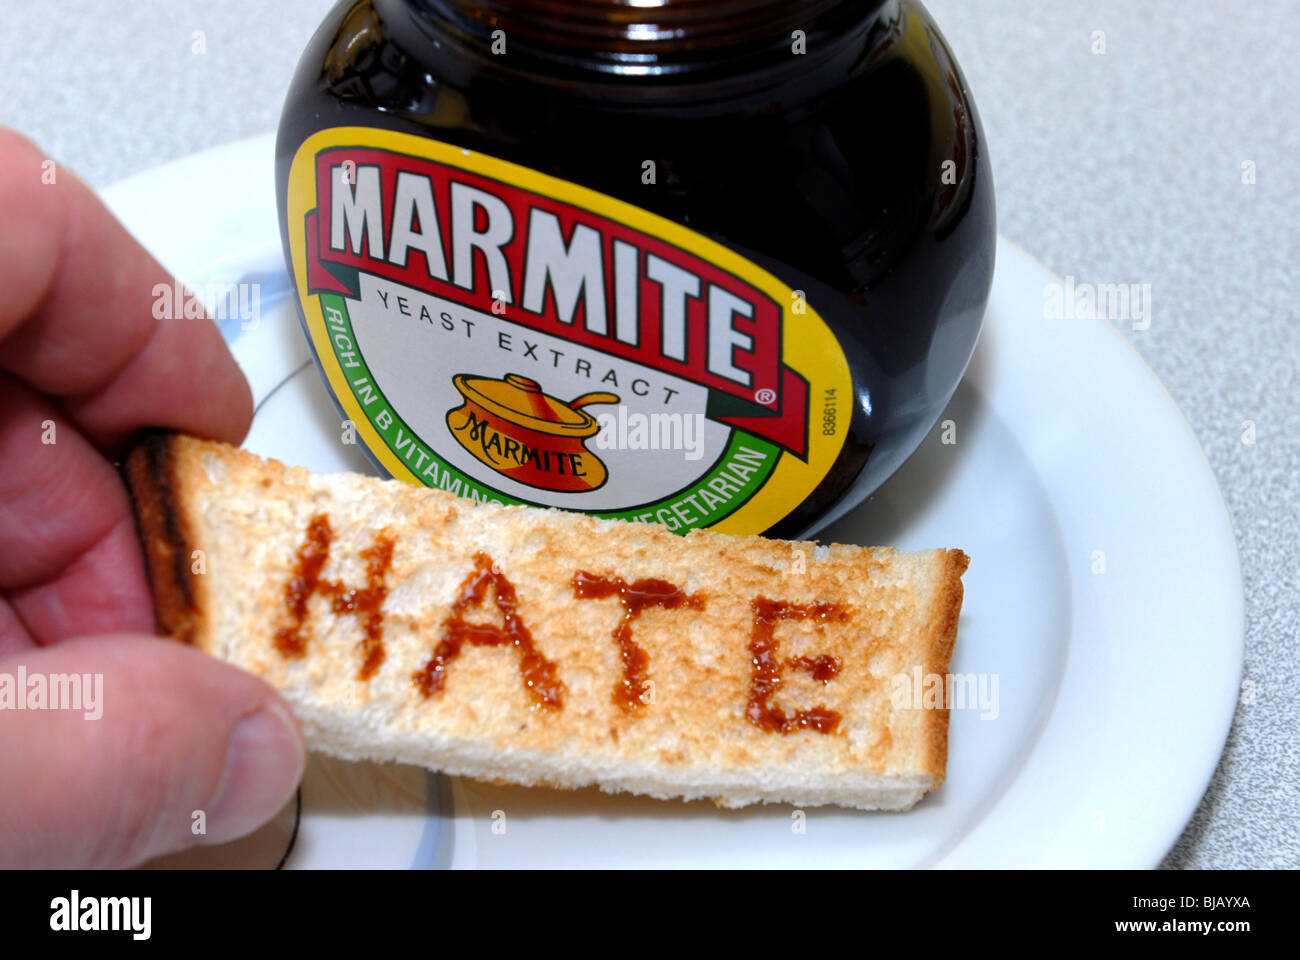 Generic image of Marmite with Love and Hate written on toast.  A Unilever Brand guaranteed to cause arguments - Stock Image